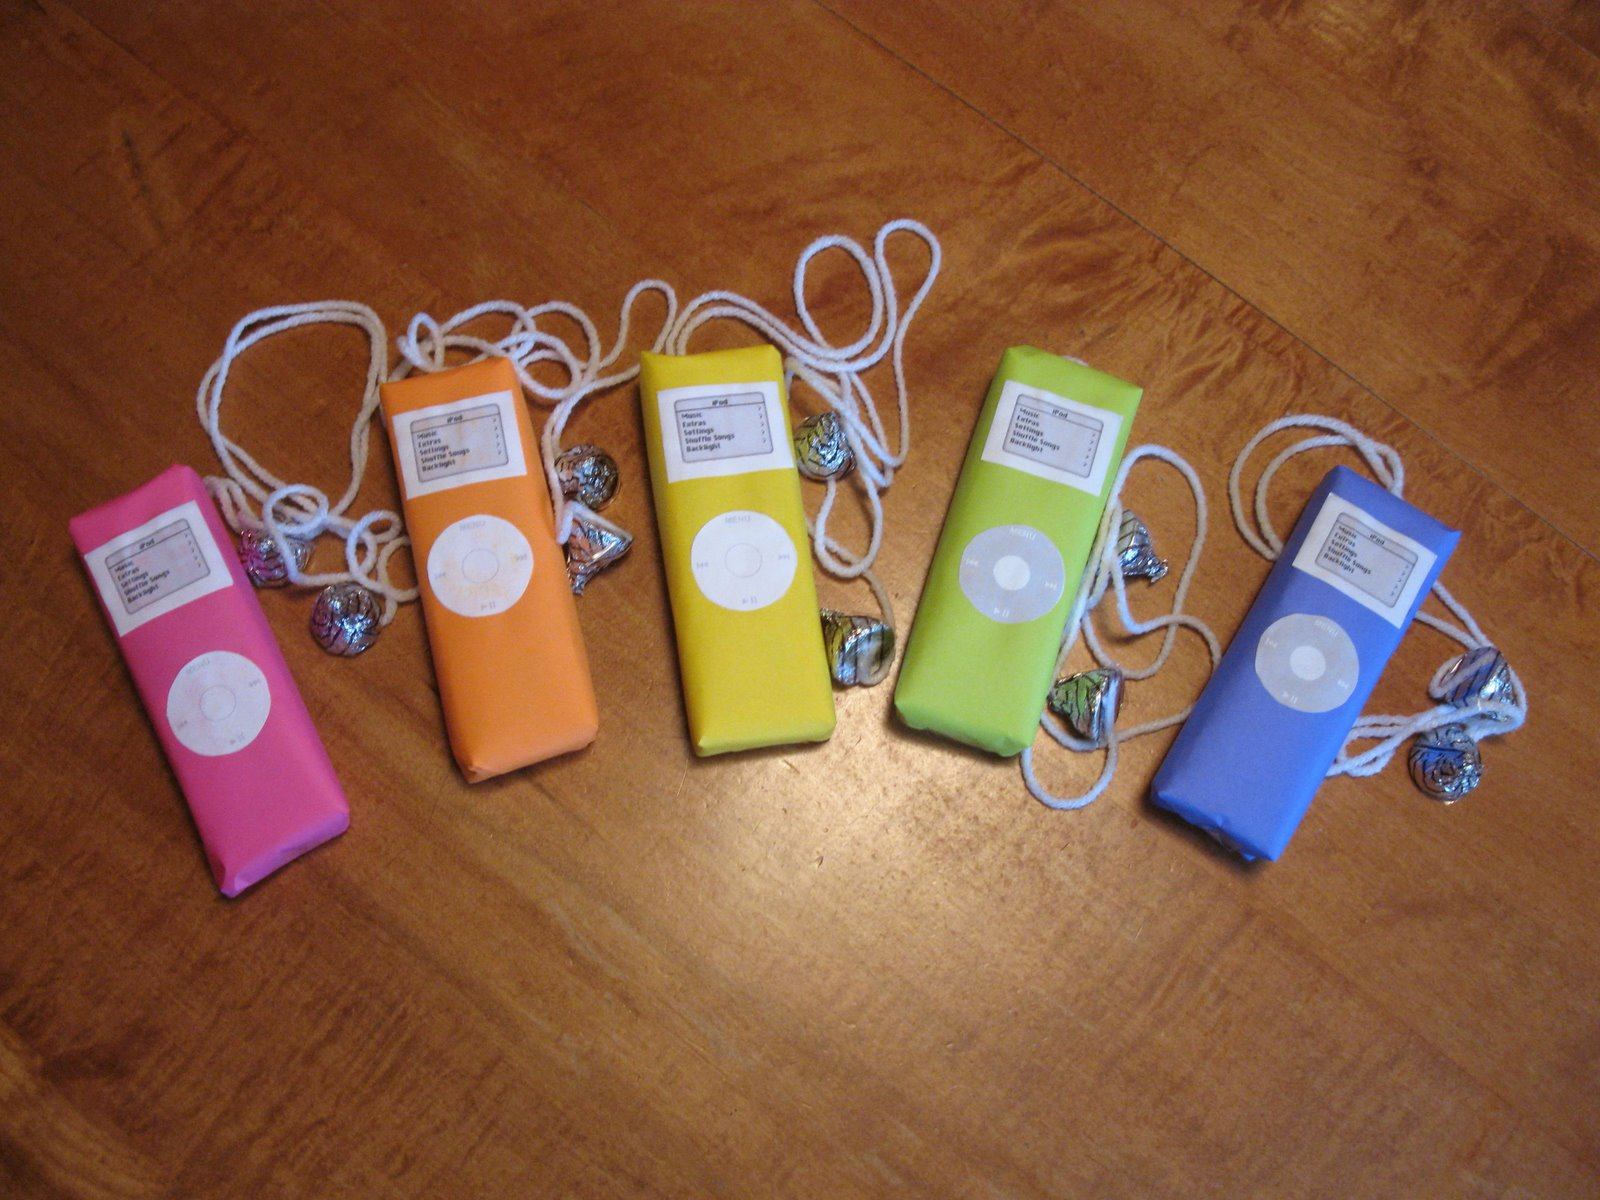 iPod party favors